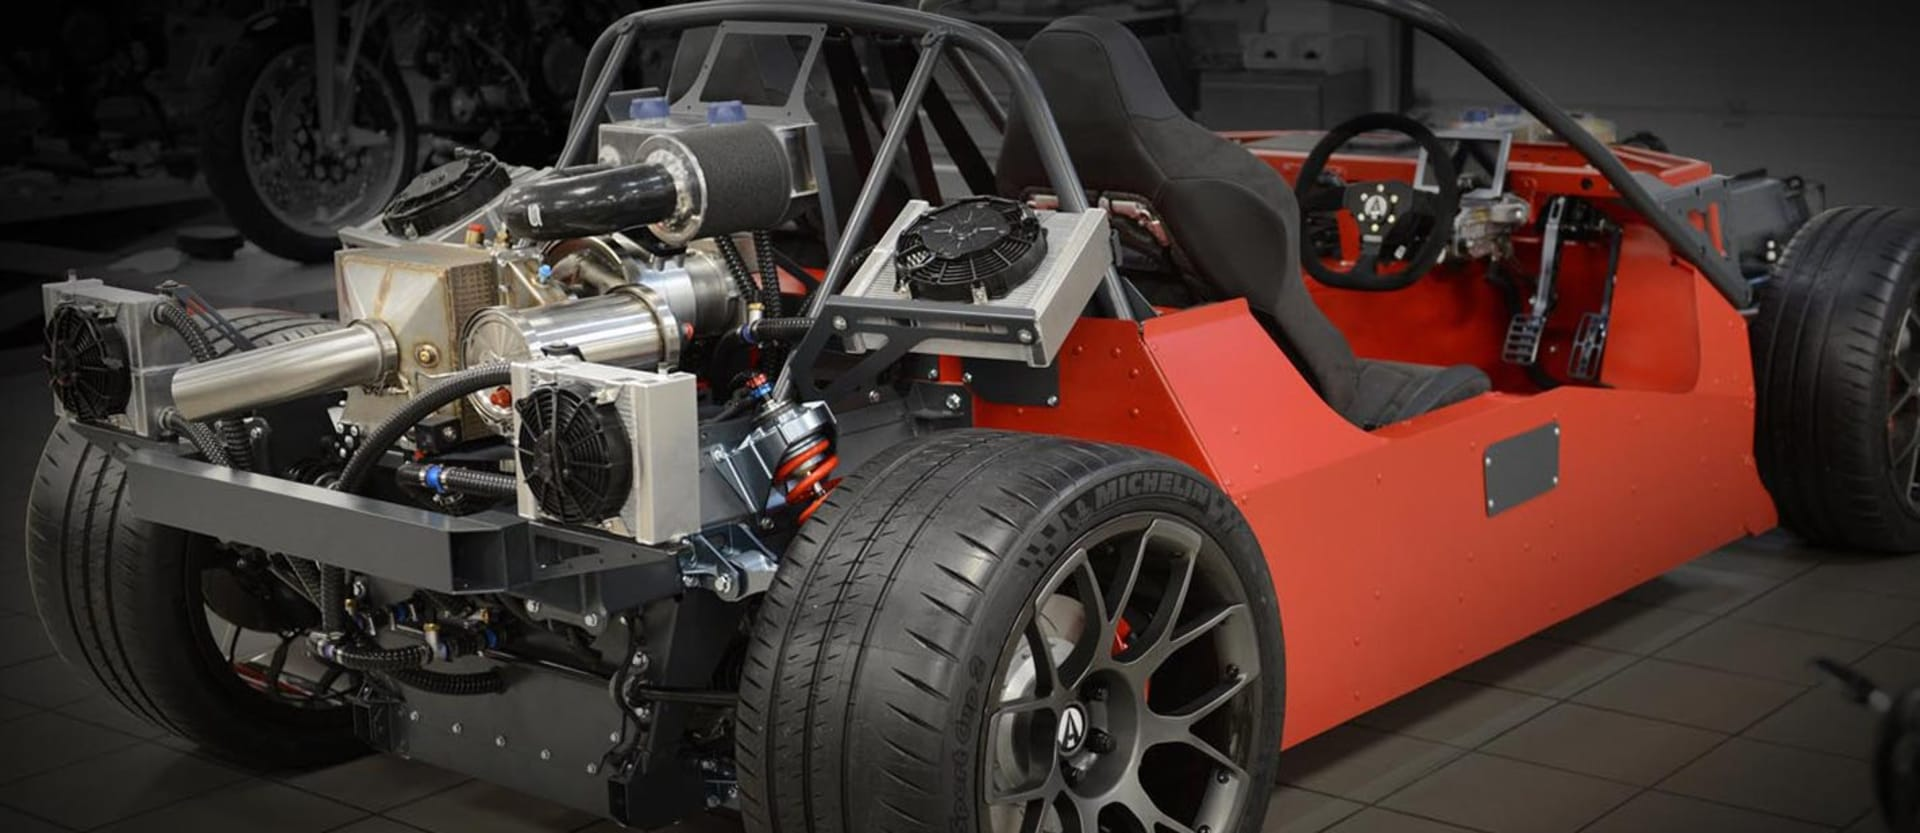 Ariel P40 to be psychotic 880kW jet-engined hybrid hypercar